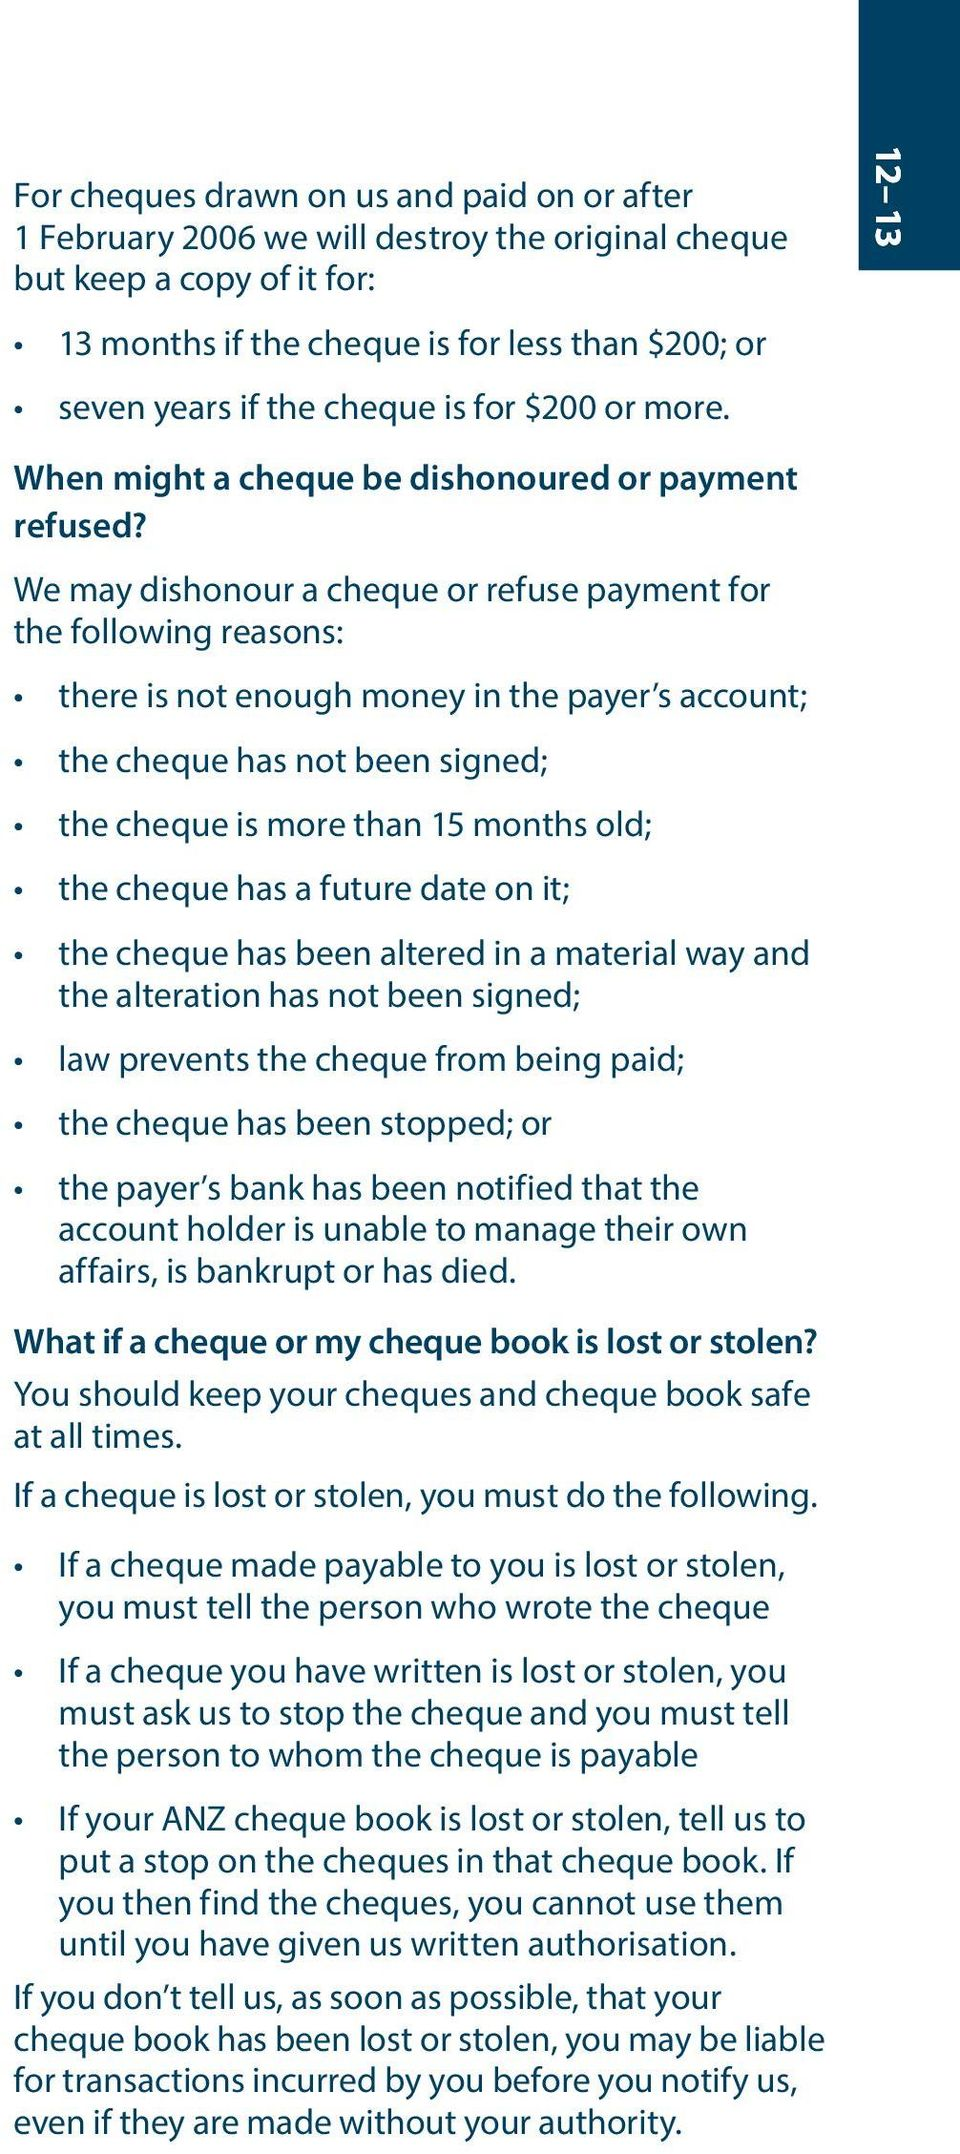 We may dishonour a cheque or refuse payment for the following reasons: there is not enough money in the payer s account; the cheque has not been signed; the cheque is more than 15 months old; the